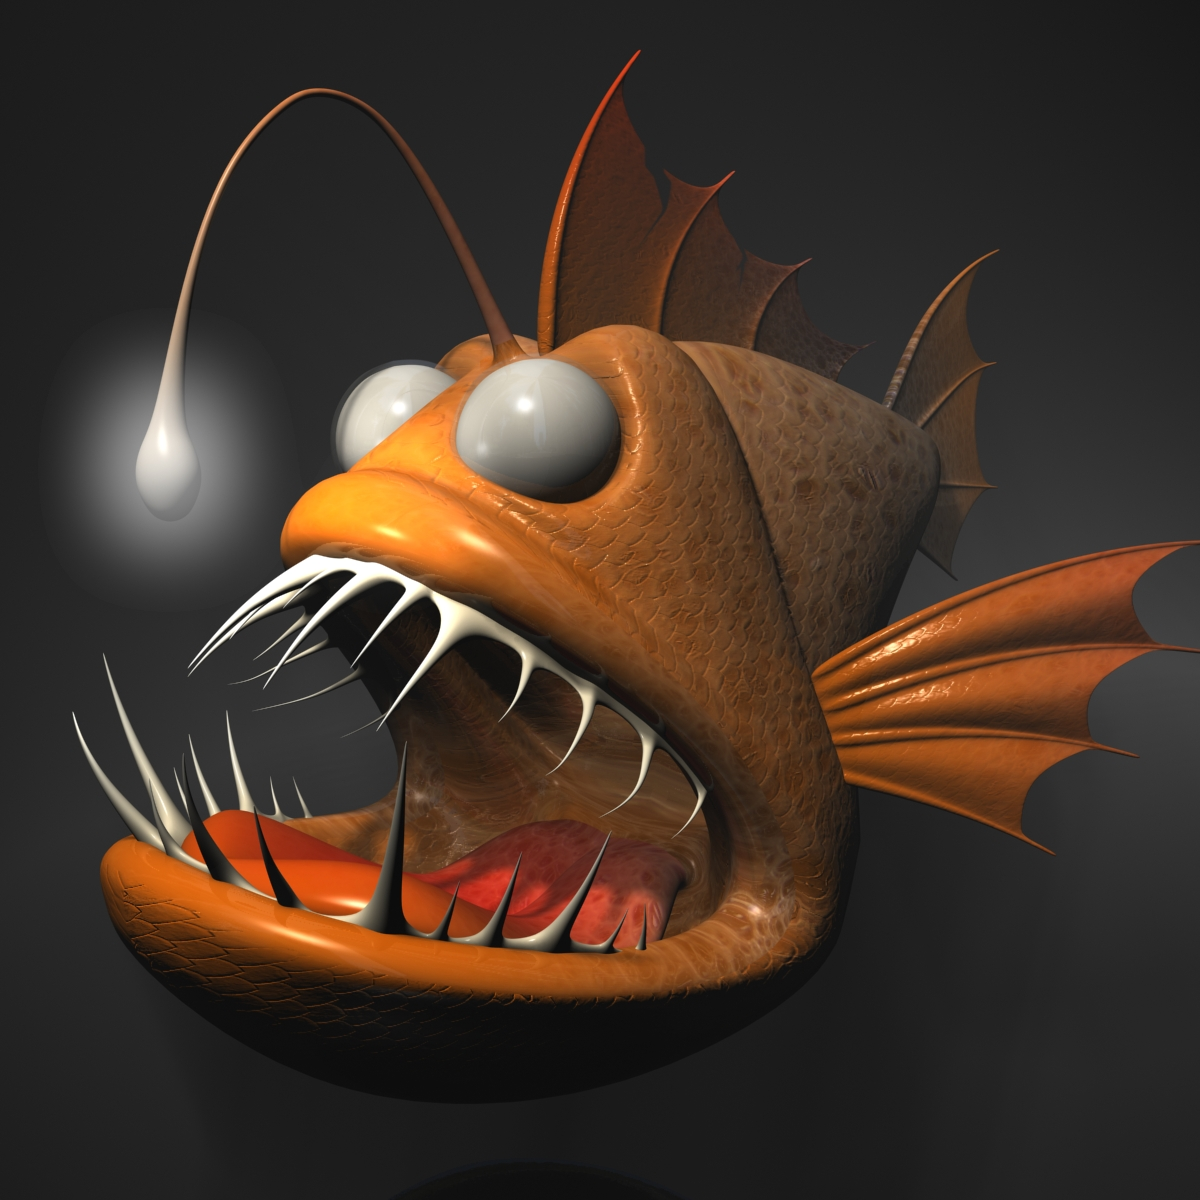 Cartoon Anglerfish rigged 3d líkan 3ds max fbx obj 220234